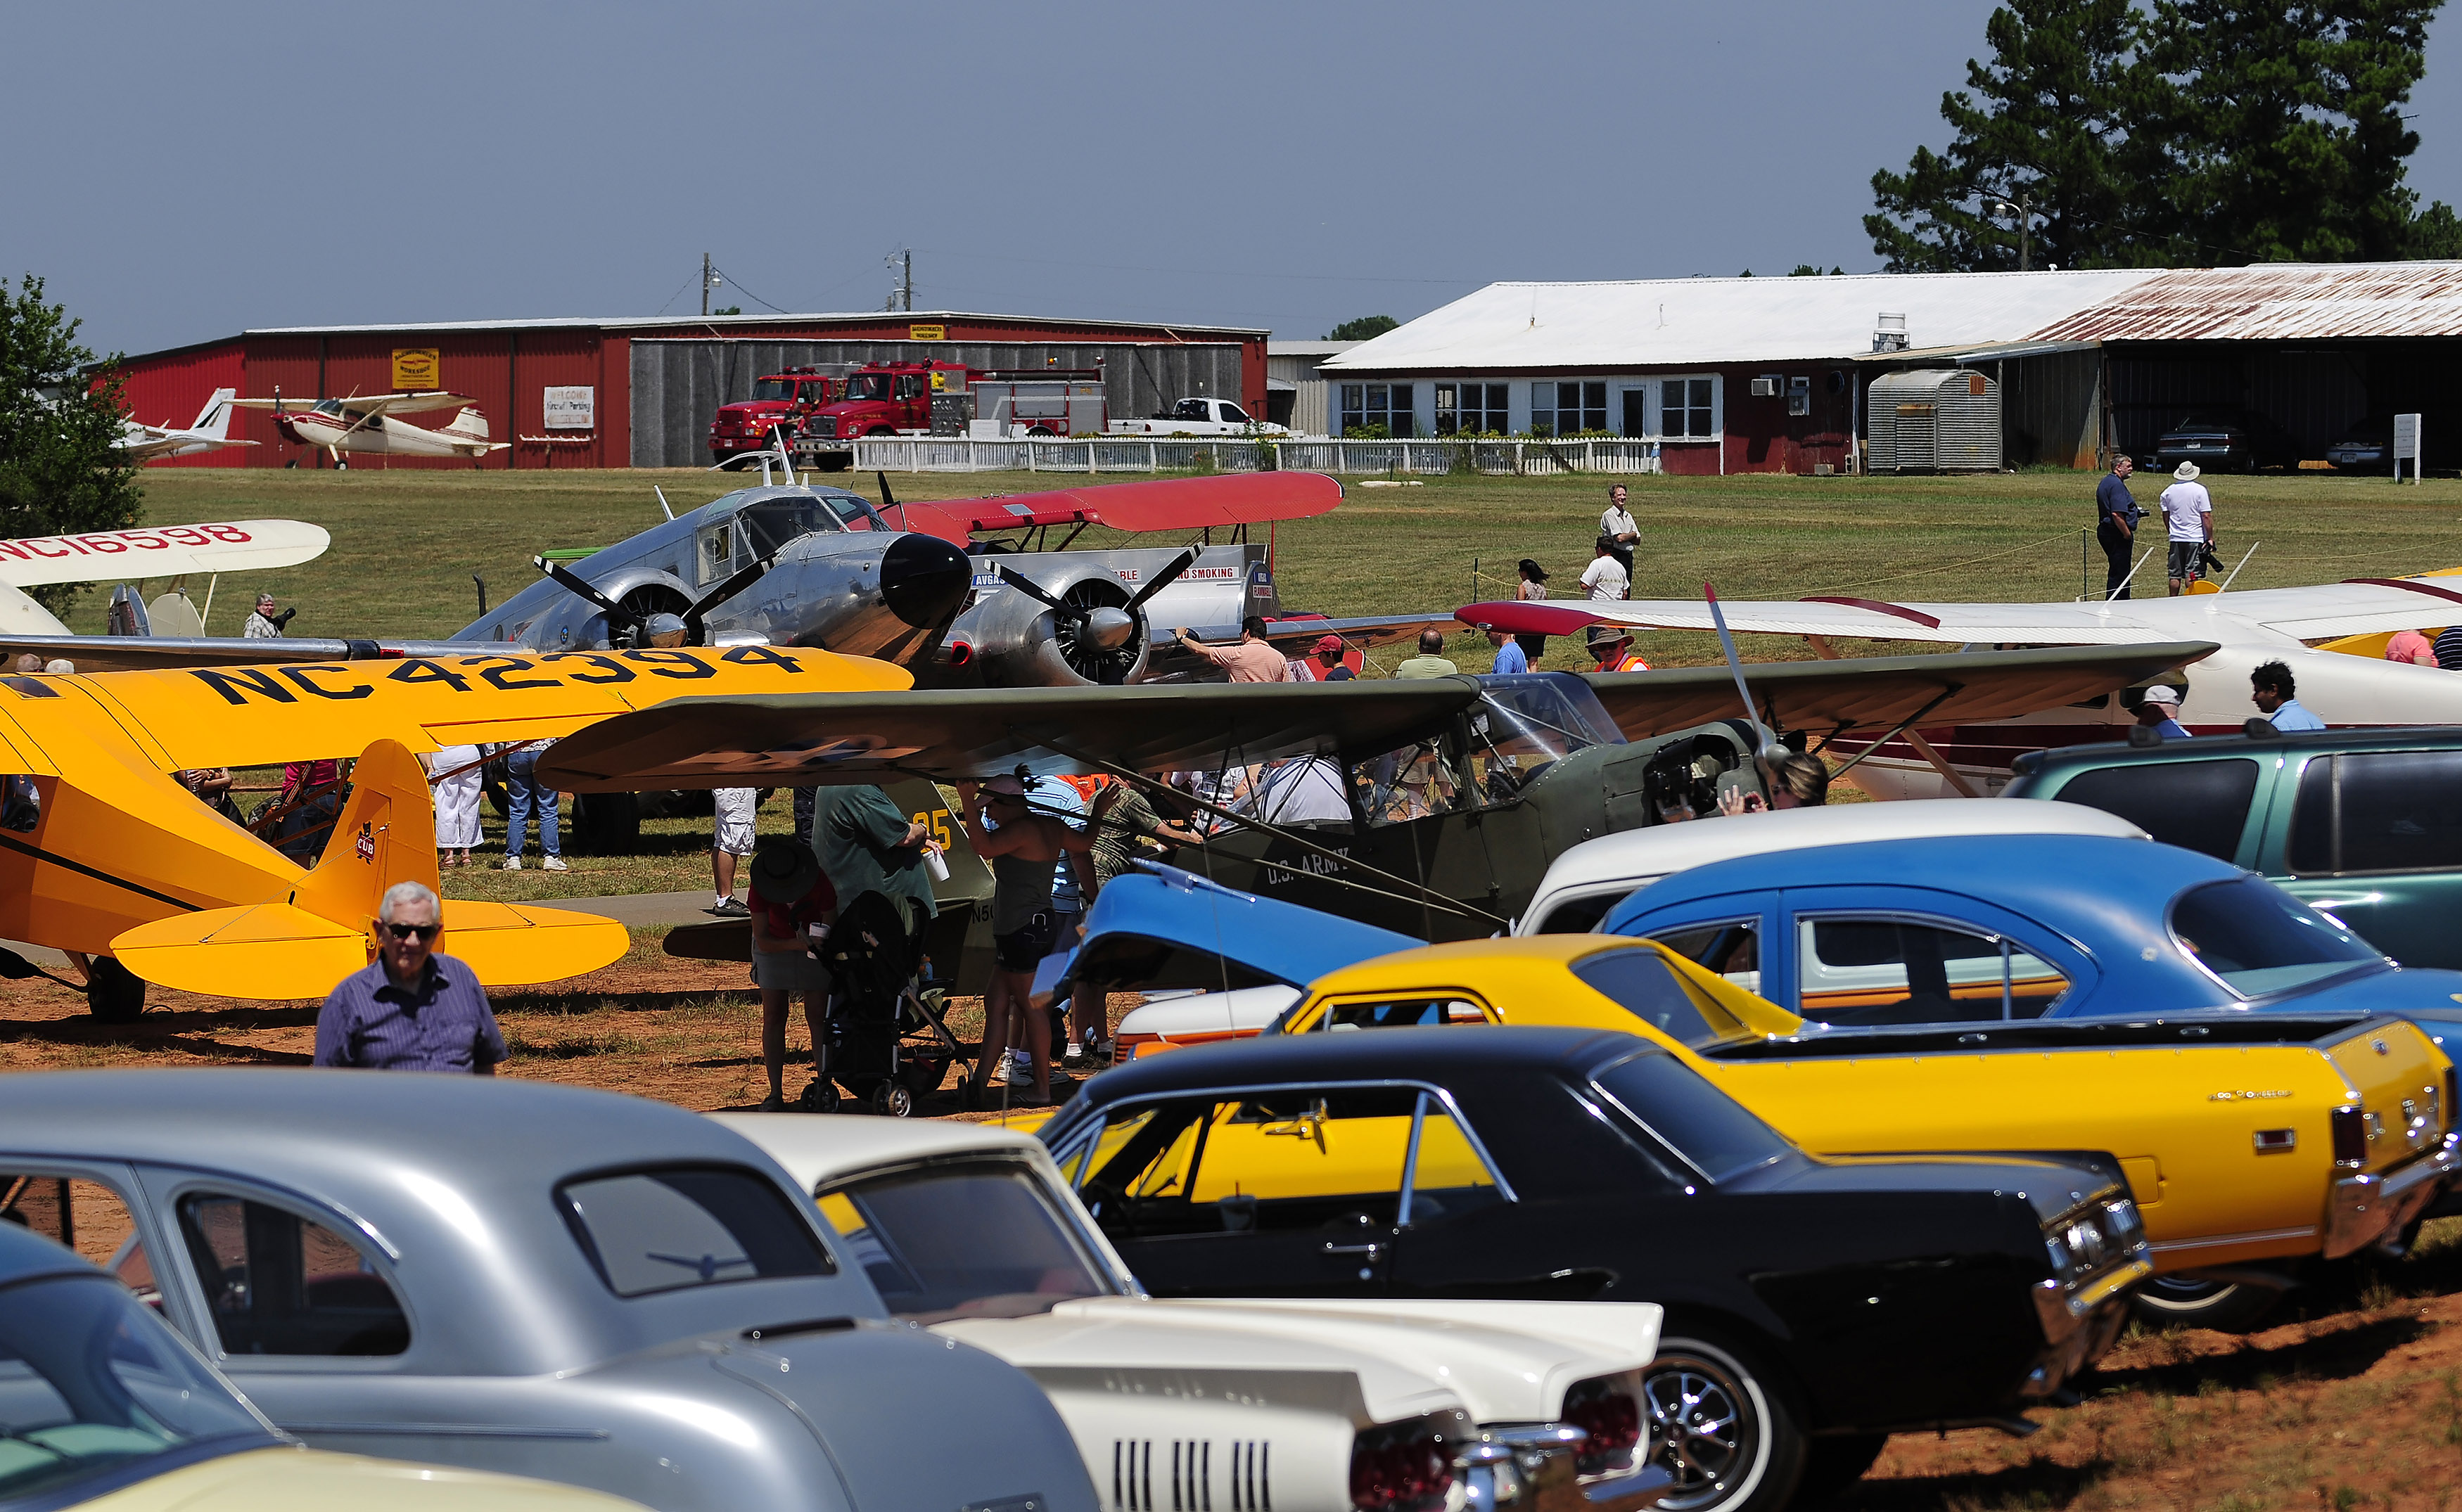 Classic and antique automobiles and airplanes line the ramp at during the 2011 Vintage Day celebration in Williamson, Georgia. Photo by David Tulis.